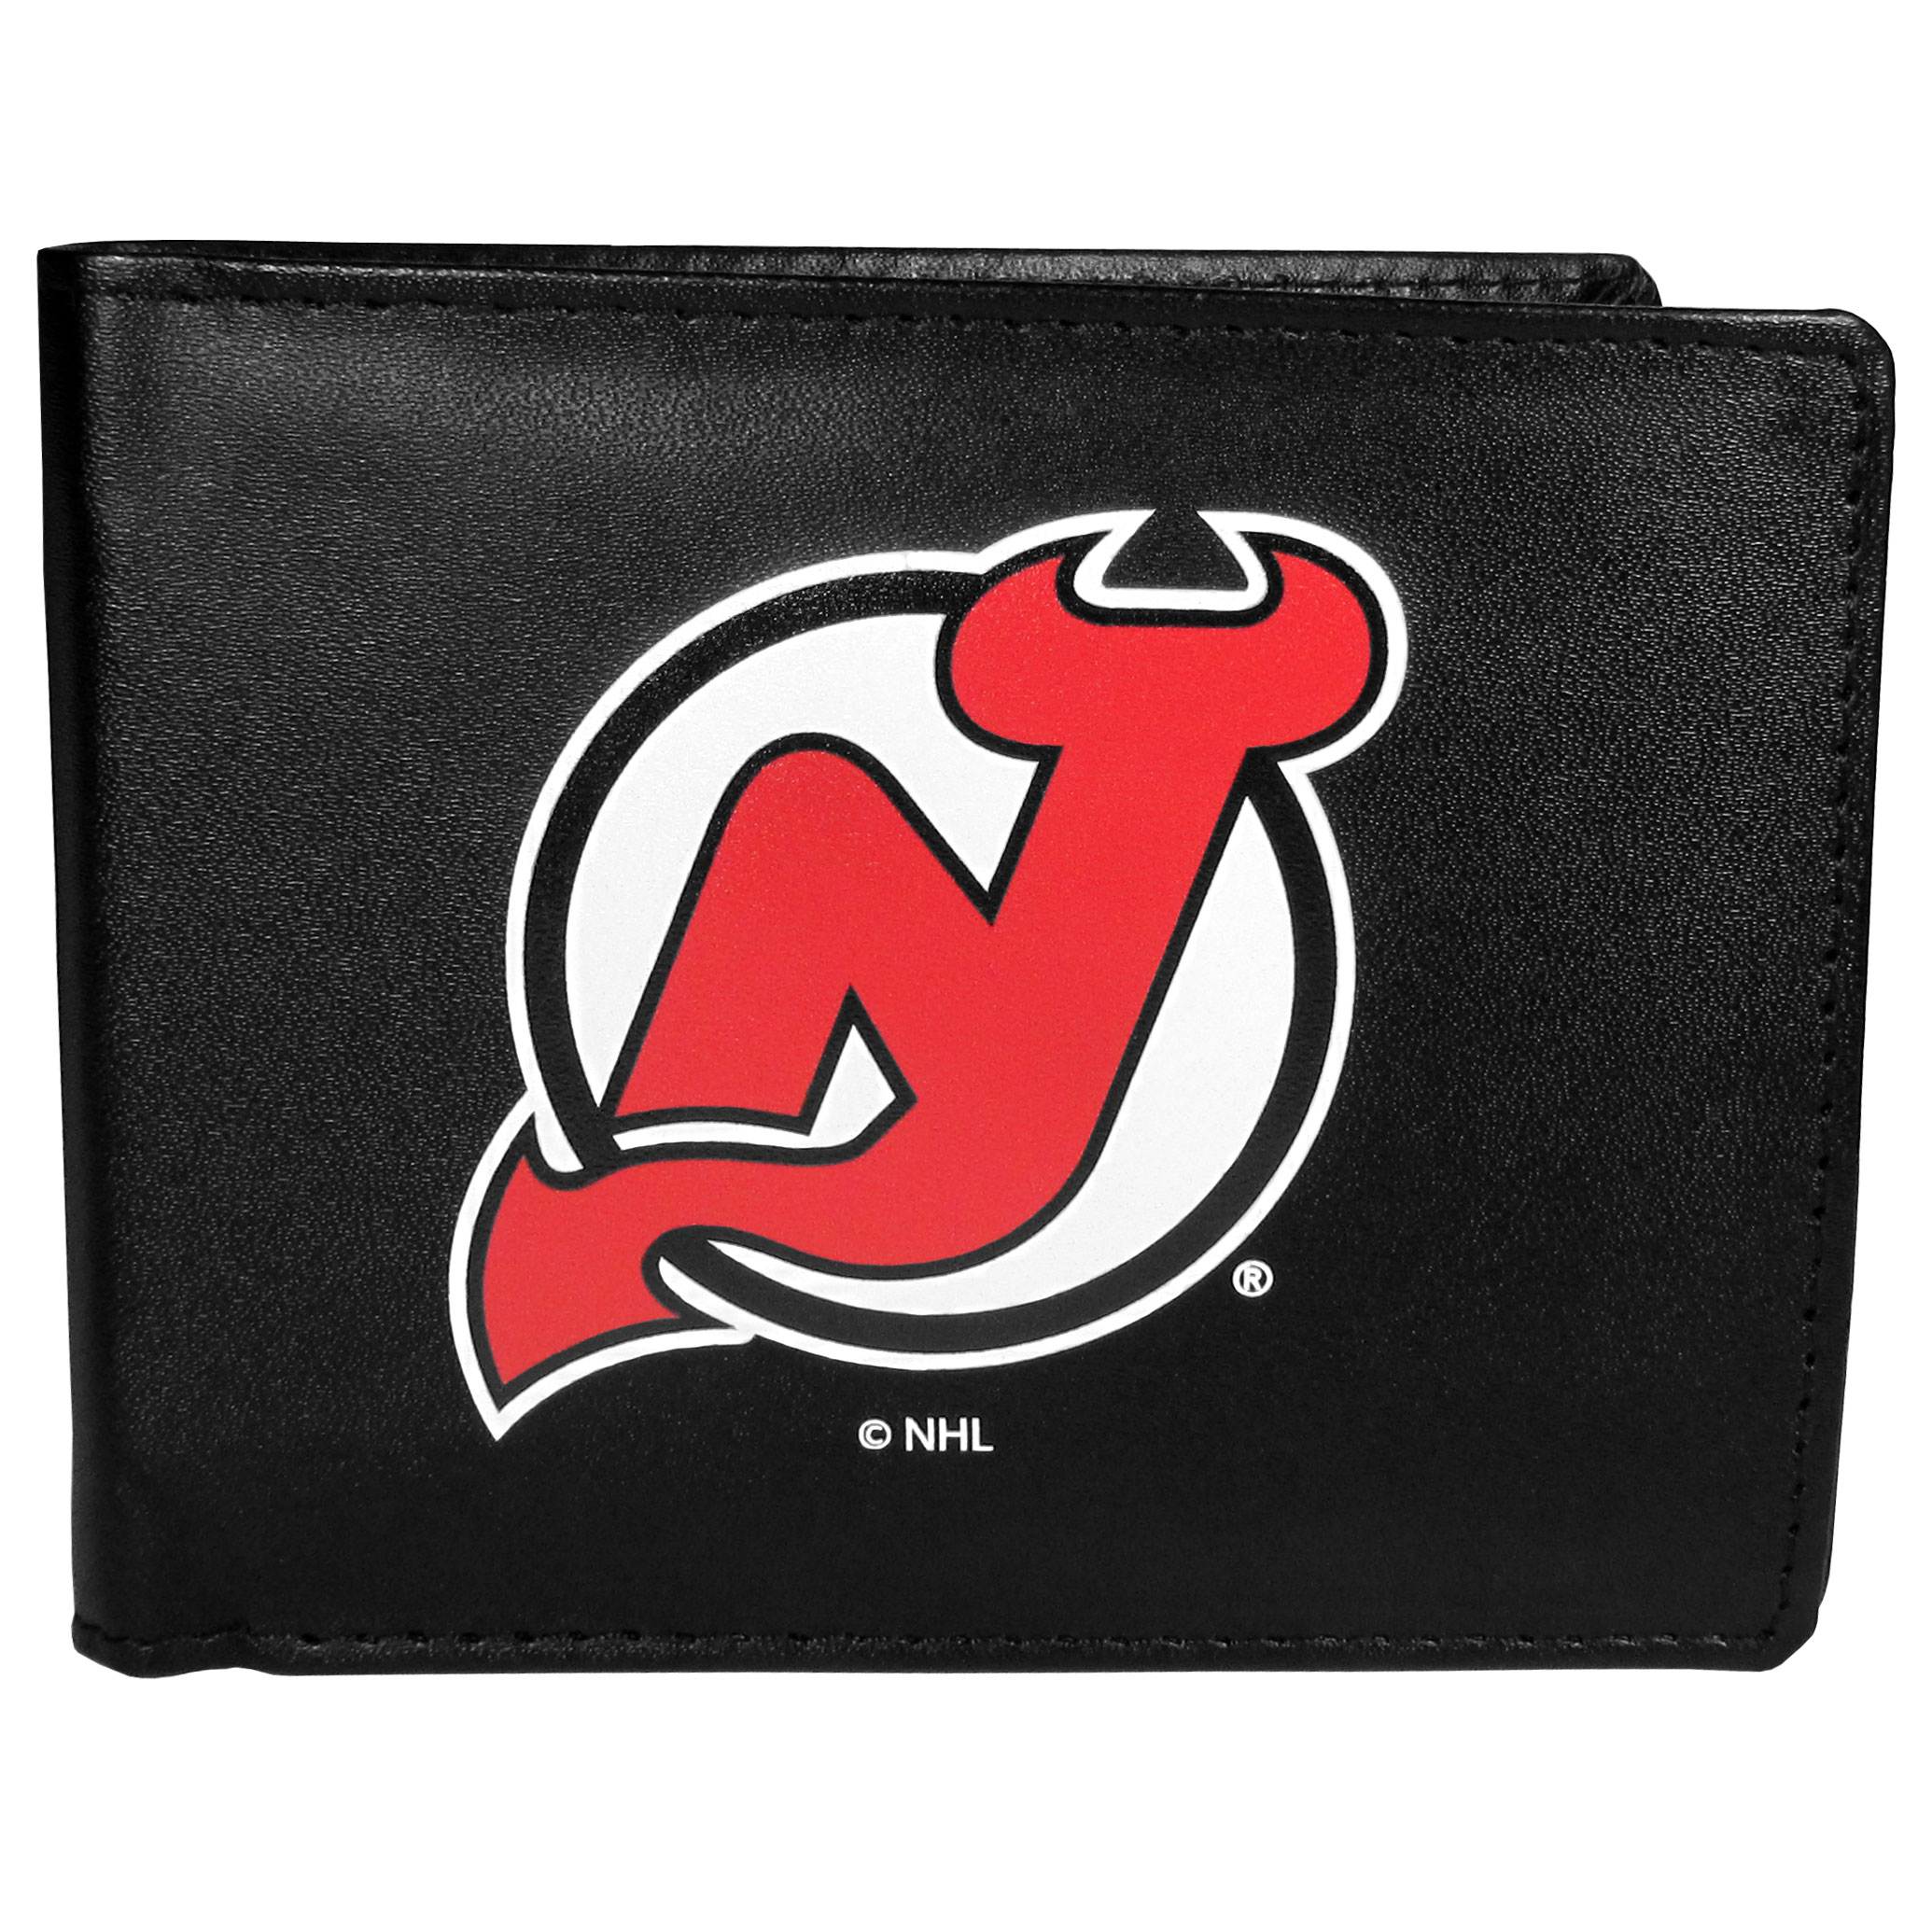 New Jersey Devils® Leather Bi-fold Wallet, Large Logo - Our classic fine leather bi-fold wallet is meticulously crafted with genuine leather that will age beautifully so you will have a quality wallet for years to come. The wallet opens to a large, billfold pocket and numerous credit card slots and has a convenient windowed ID slot. The front of the wallet features an extra large New Jersey Devils® printed logo.